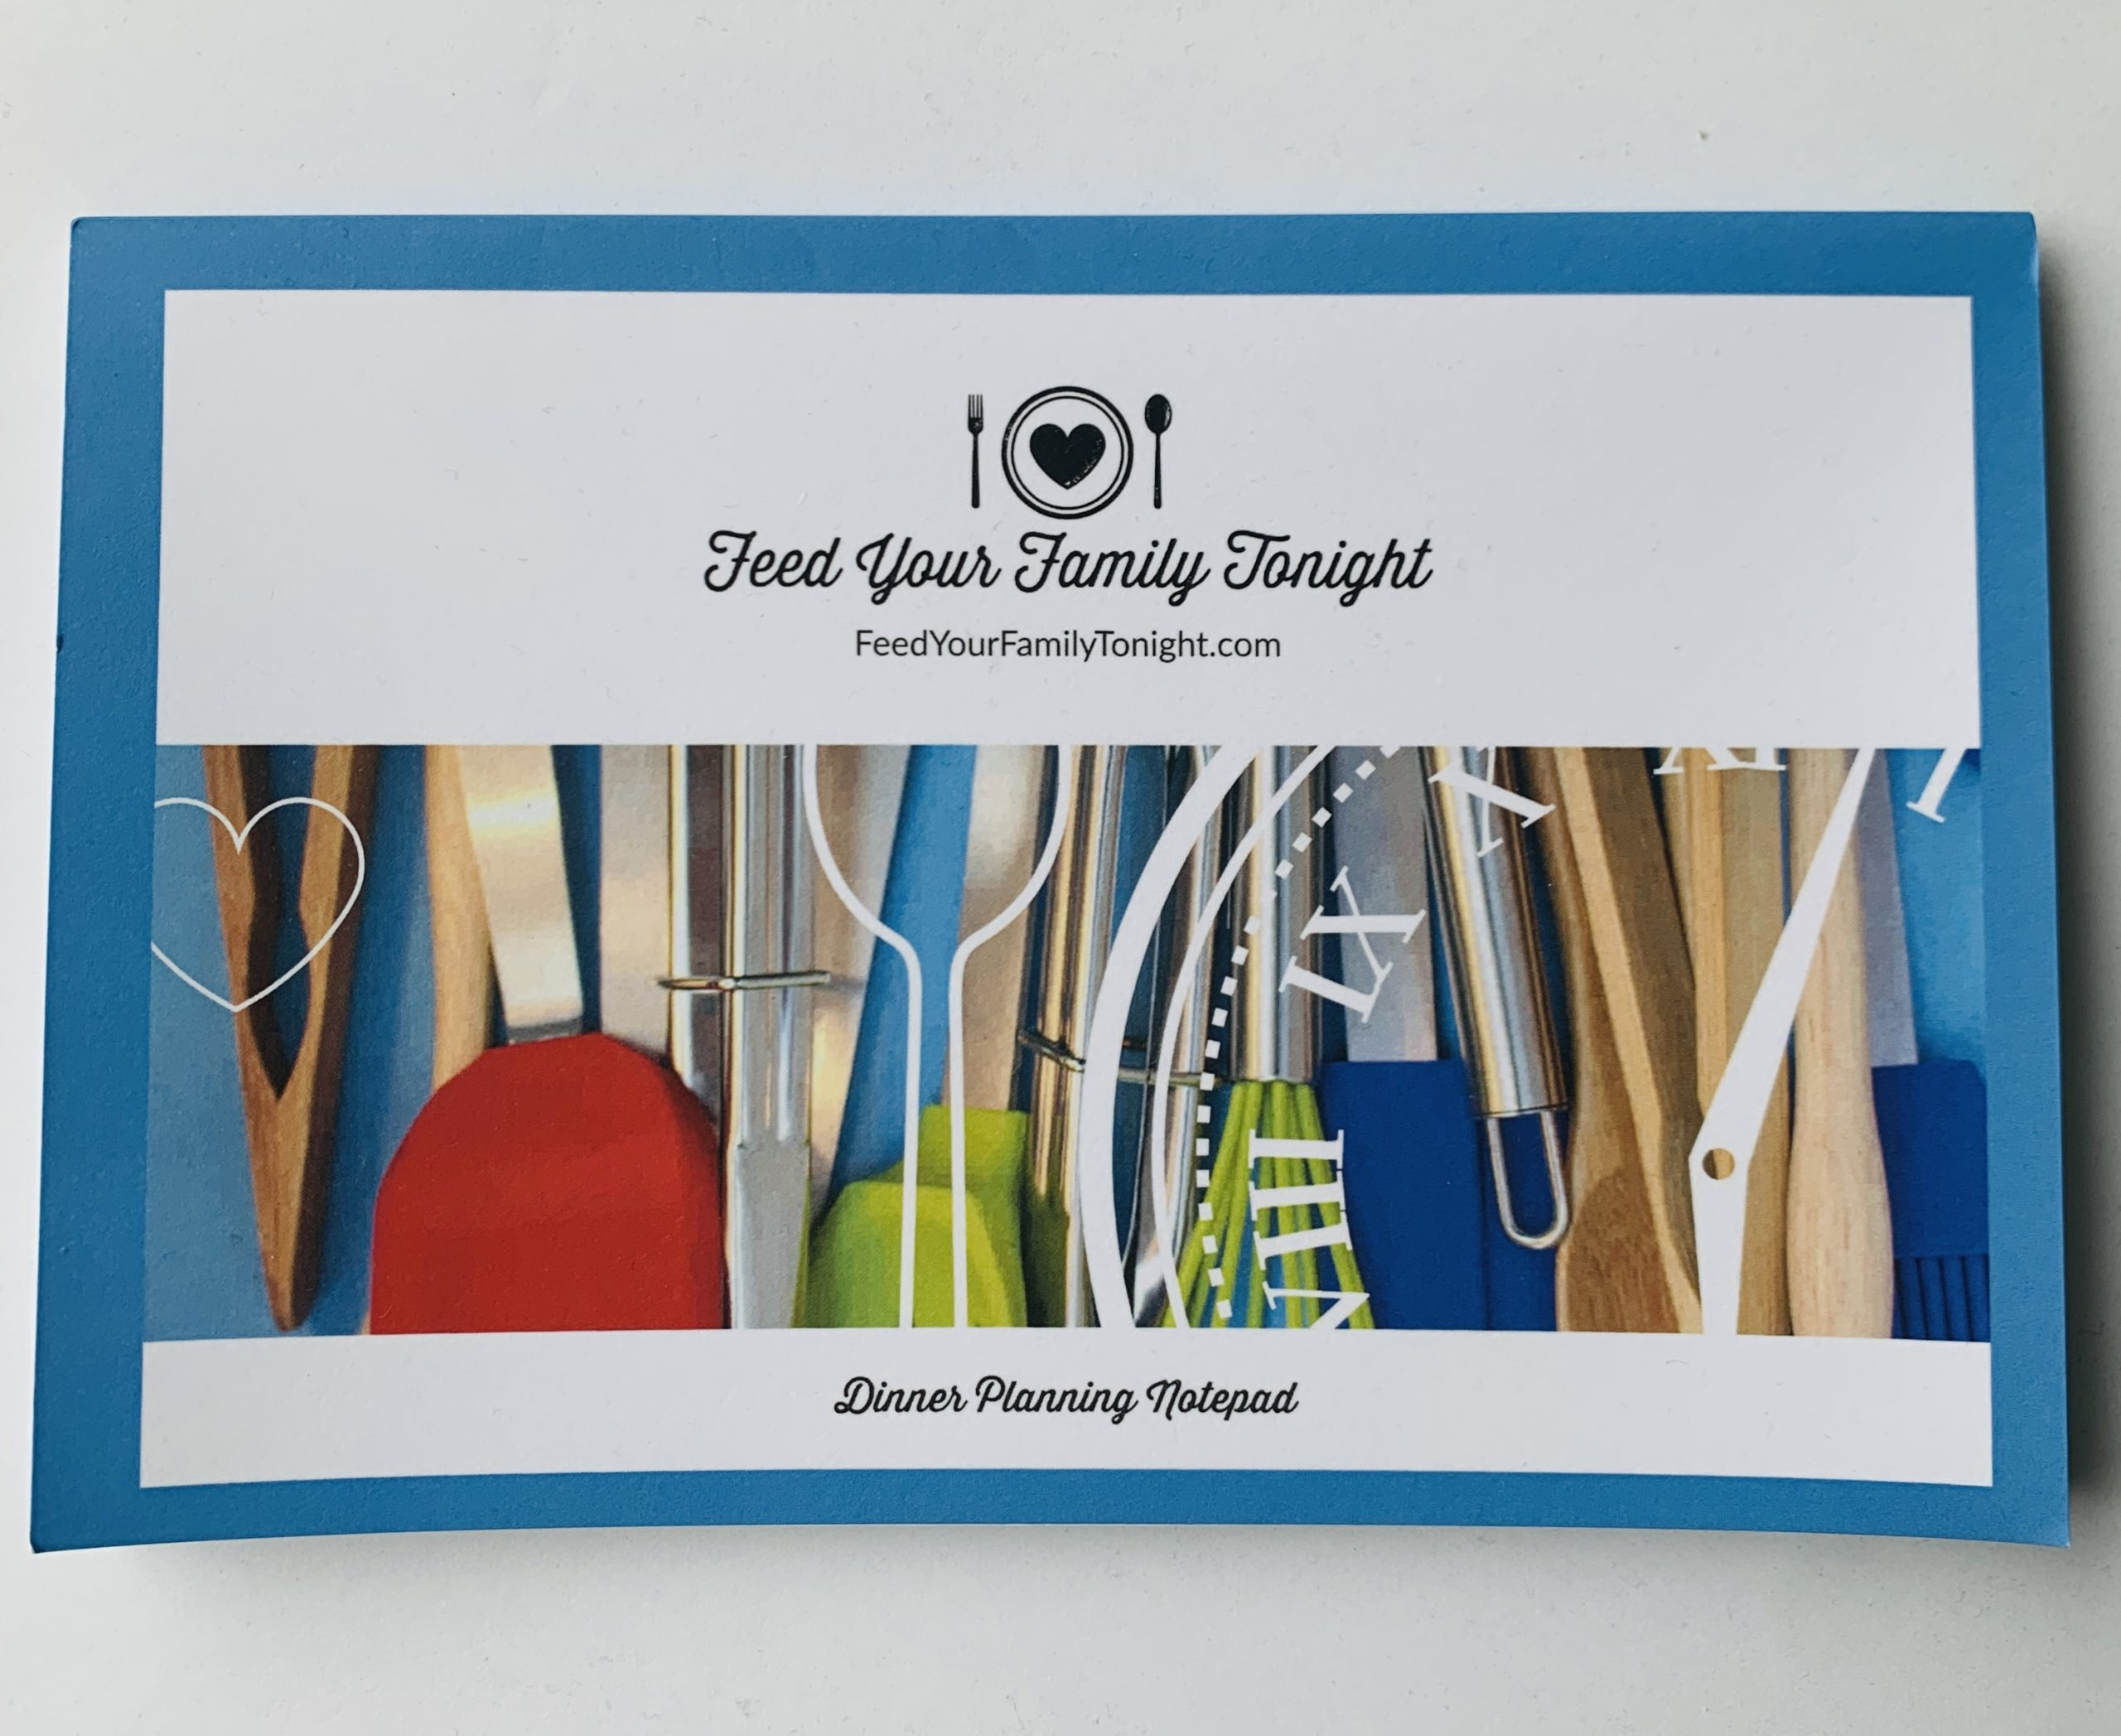 52 Sheet notebook with instructions for meal planning